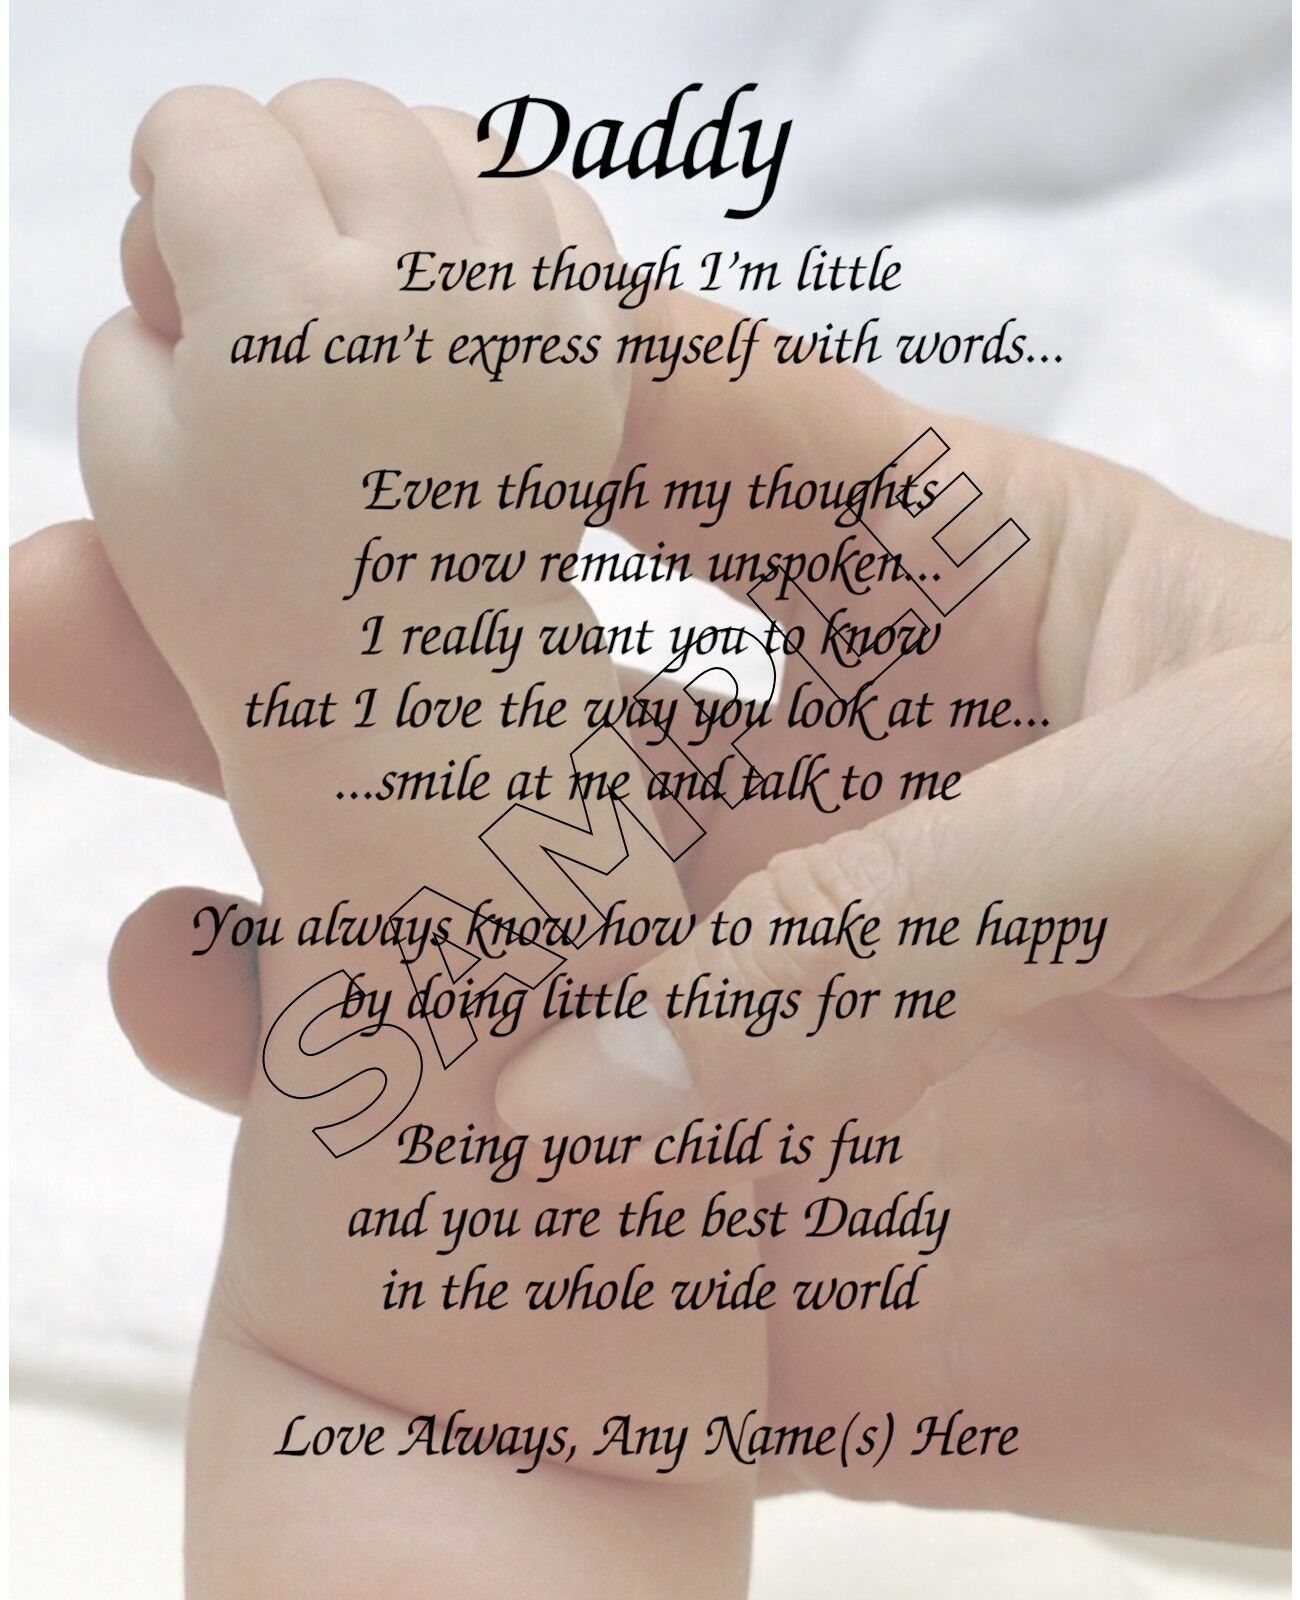 Daddy From Baby Personalized Poem Memory Birthday Father S Day Gift 1 Of 1free Shipping